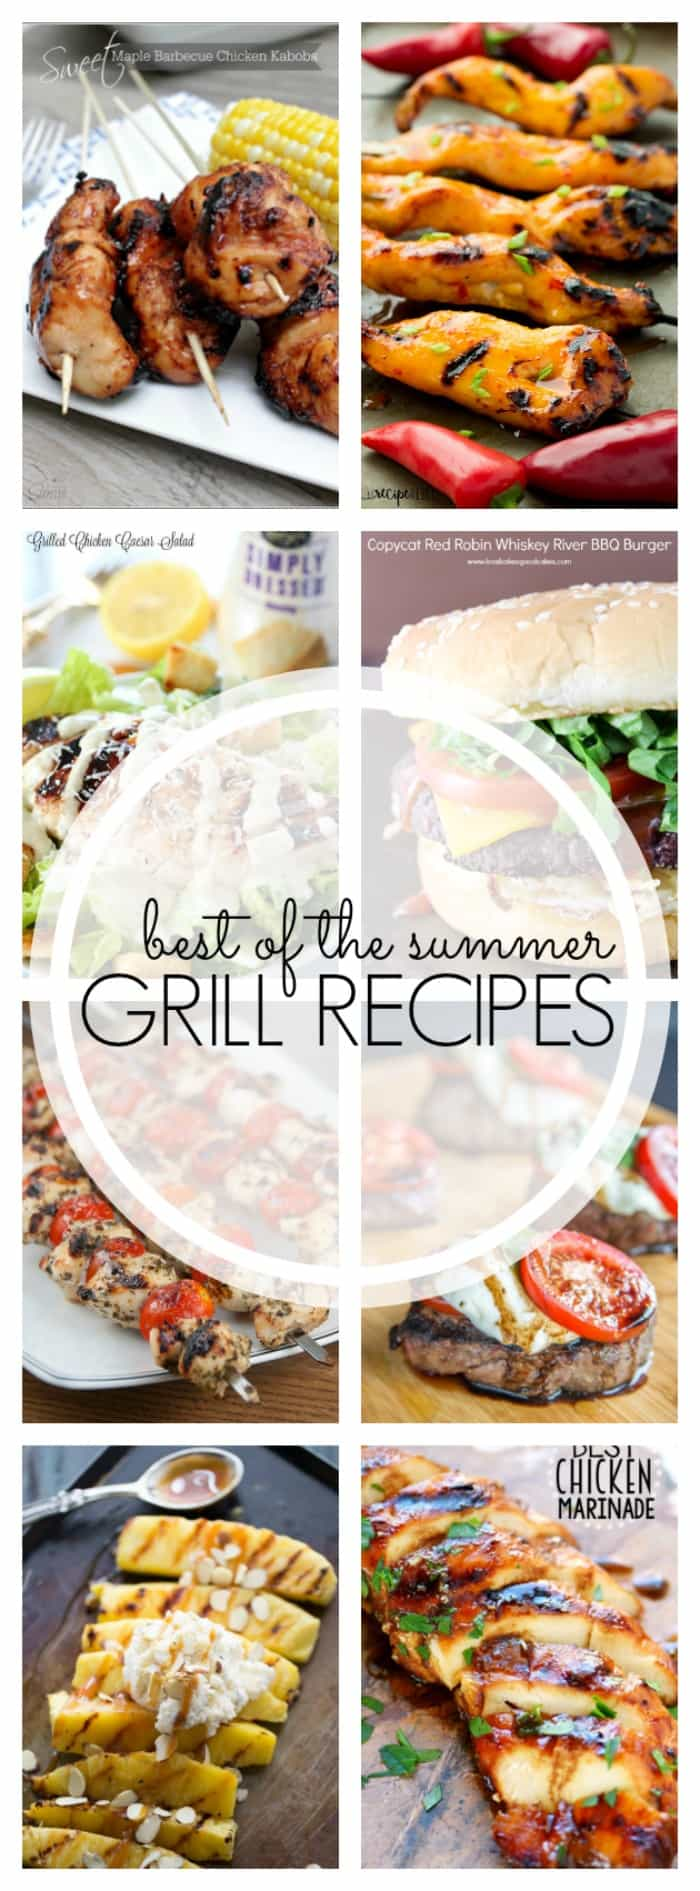 One of the things I look forward to most every summer is cooking outside on the BBQ, so make your backyard your kitchen with these Summer Grilling Recipes!